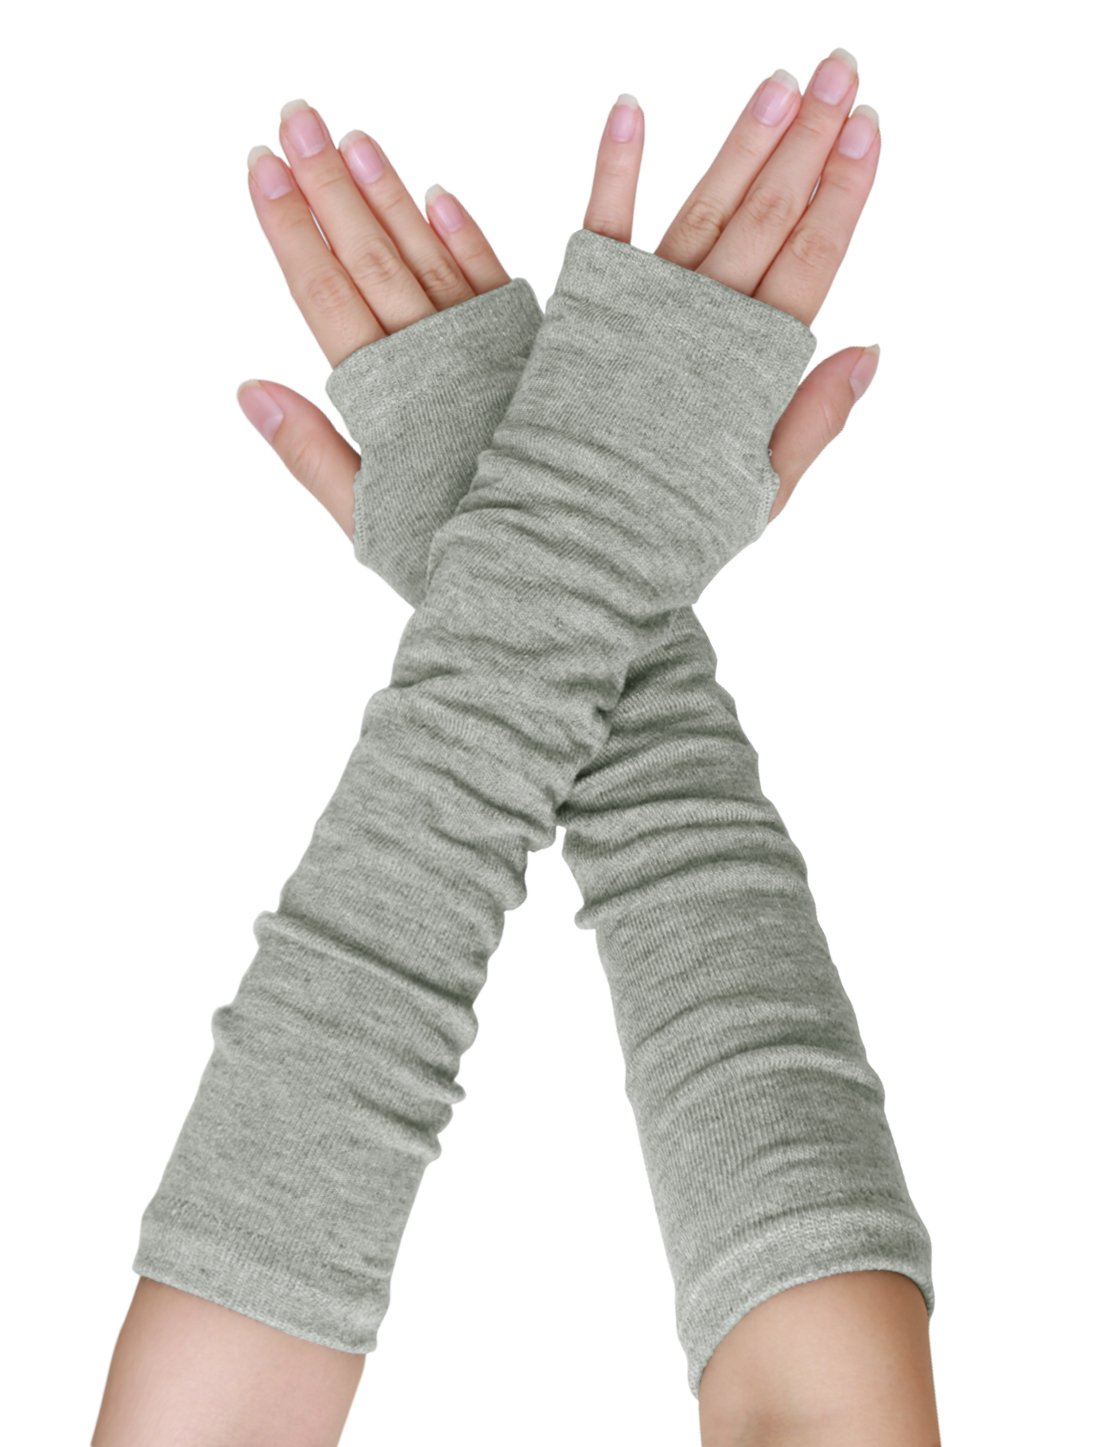 SourcingMap Women Elbow Length Arm Warmer Gloves Thumbhole Fingerless 1 Pairs Grey a15110400ux0407